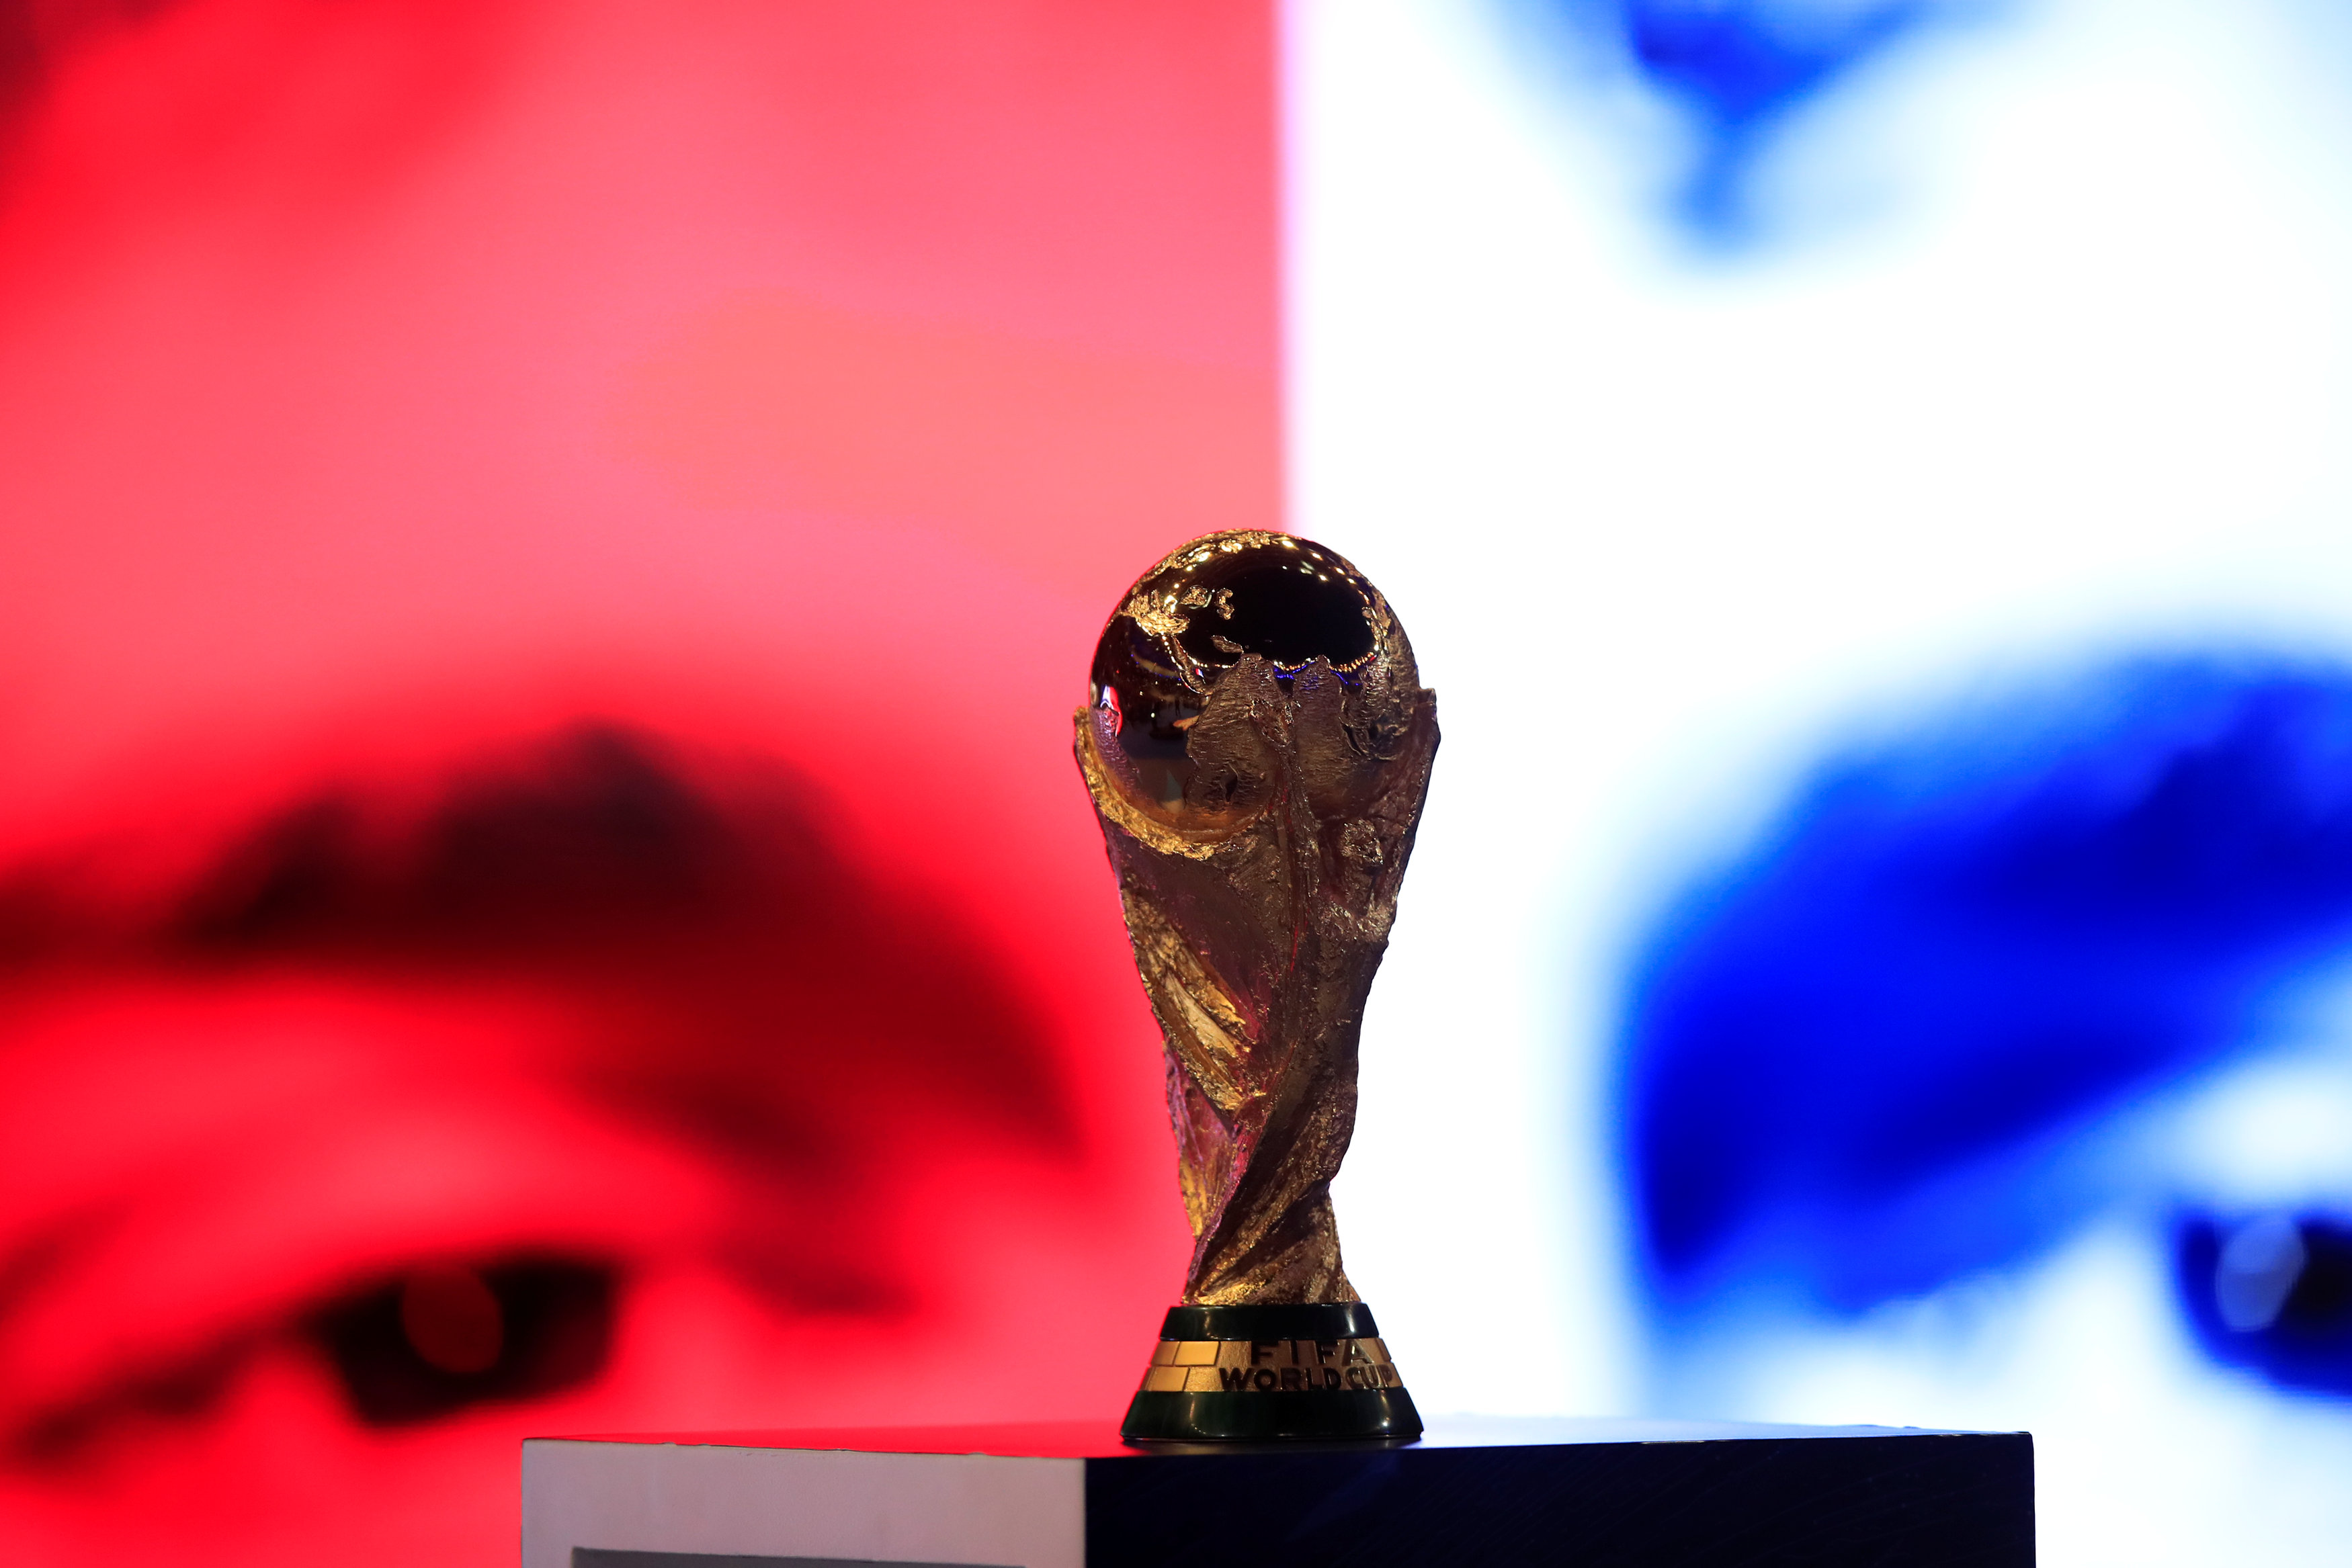 FIFA World Cup winners list - past FIFA World Cup winners list by year!